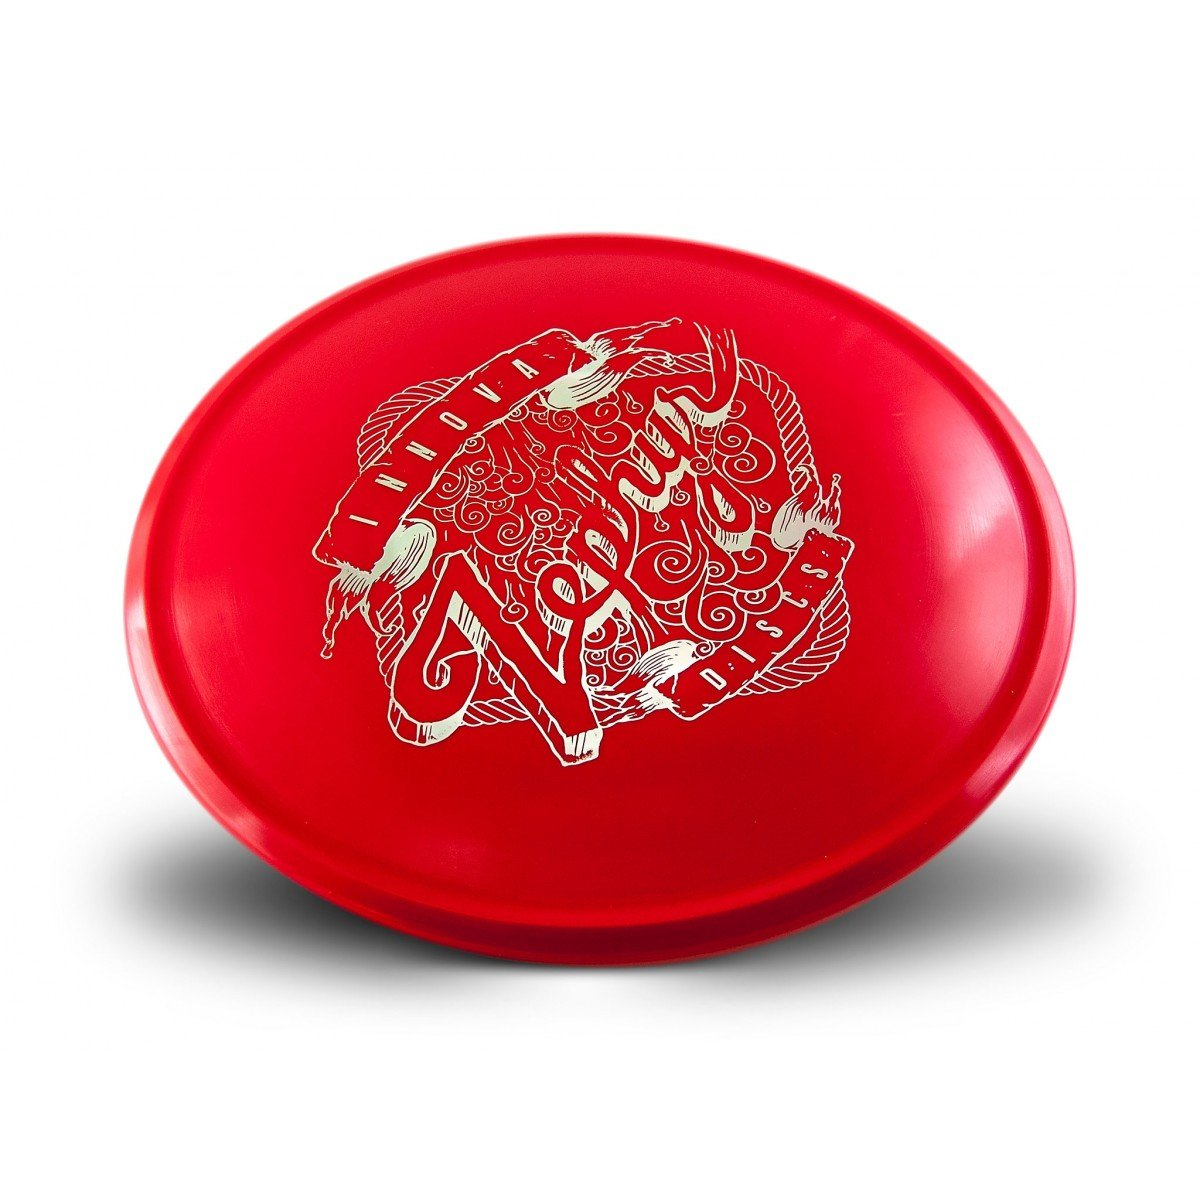 INNOVA Limited Edition Star Zephyr Specialty Competition Golf Disc [Colors May Vary] - 180-189g by INNOVA